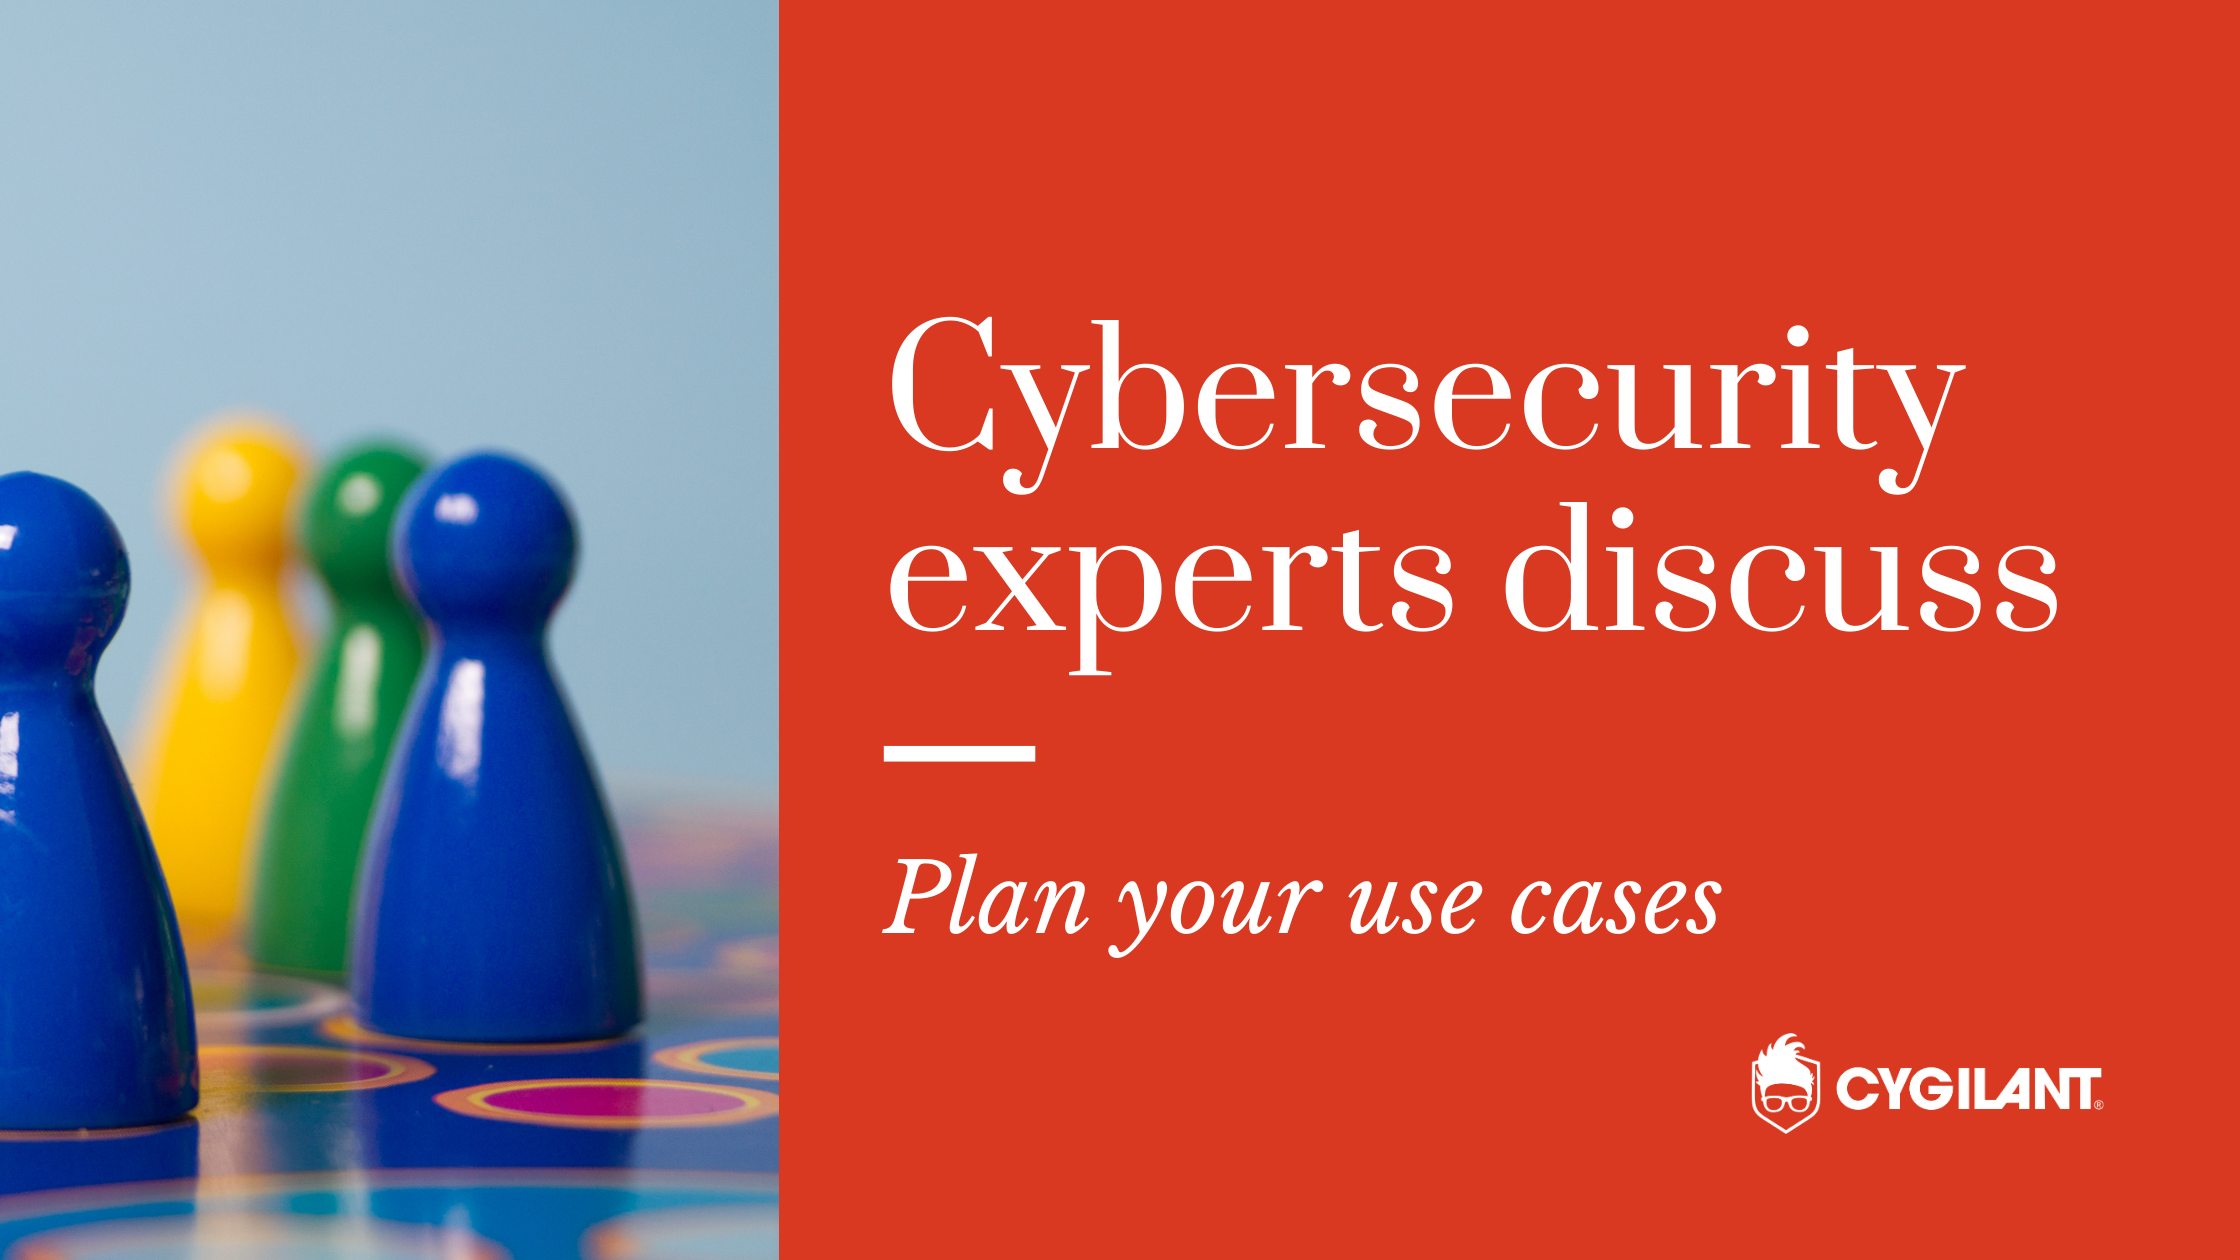 Cybersecurity Experts Discuss: Plan Your Use Cases